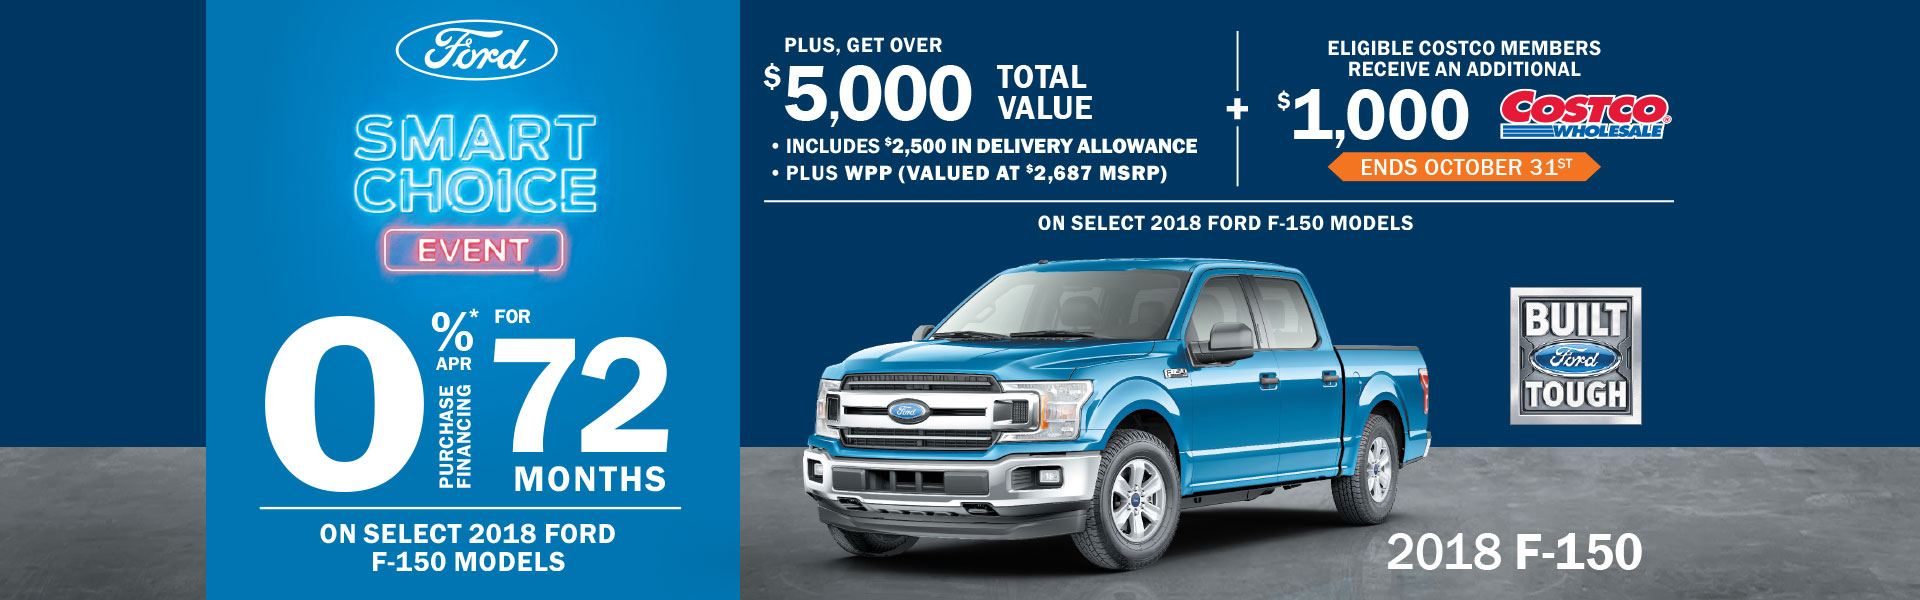 Ford Smart Choice Event F-150's